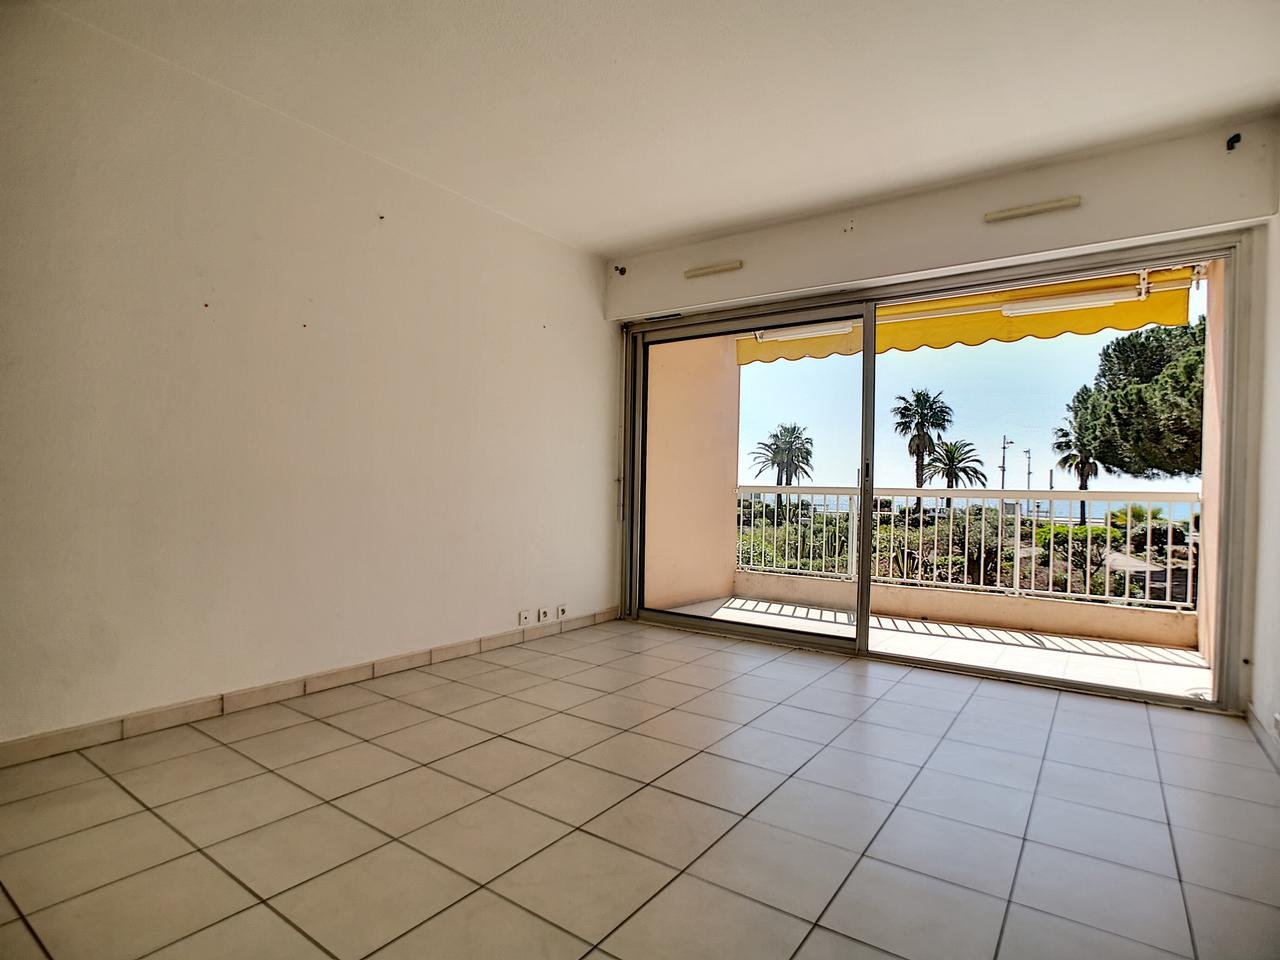 Appartement  2 Rooms 34m2  for sale   255 000 €